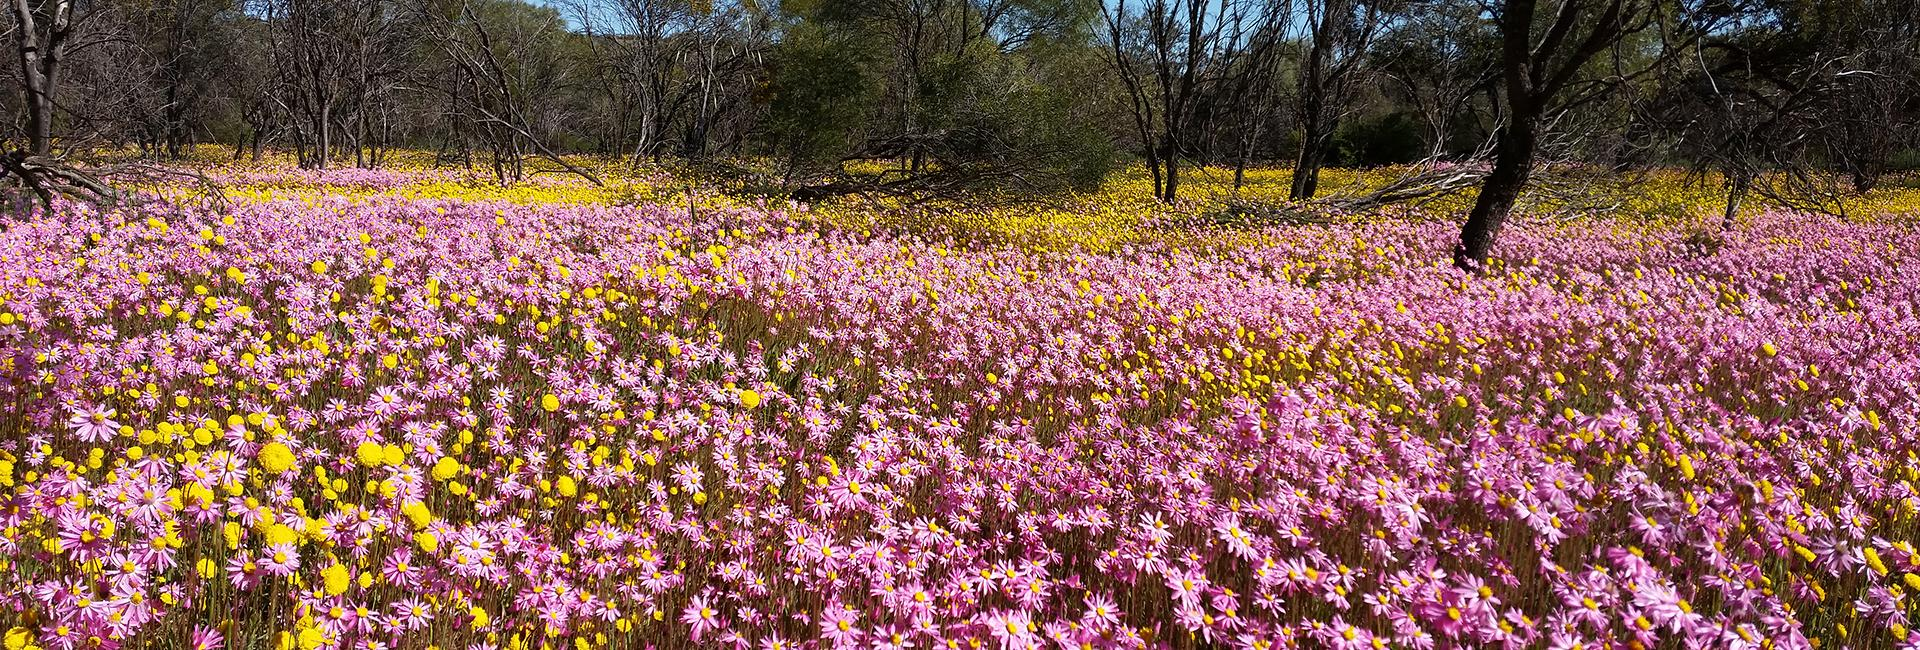 A carpet of everlasting wildflowers in Coalseam Conservation Park, Western Australia